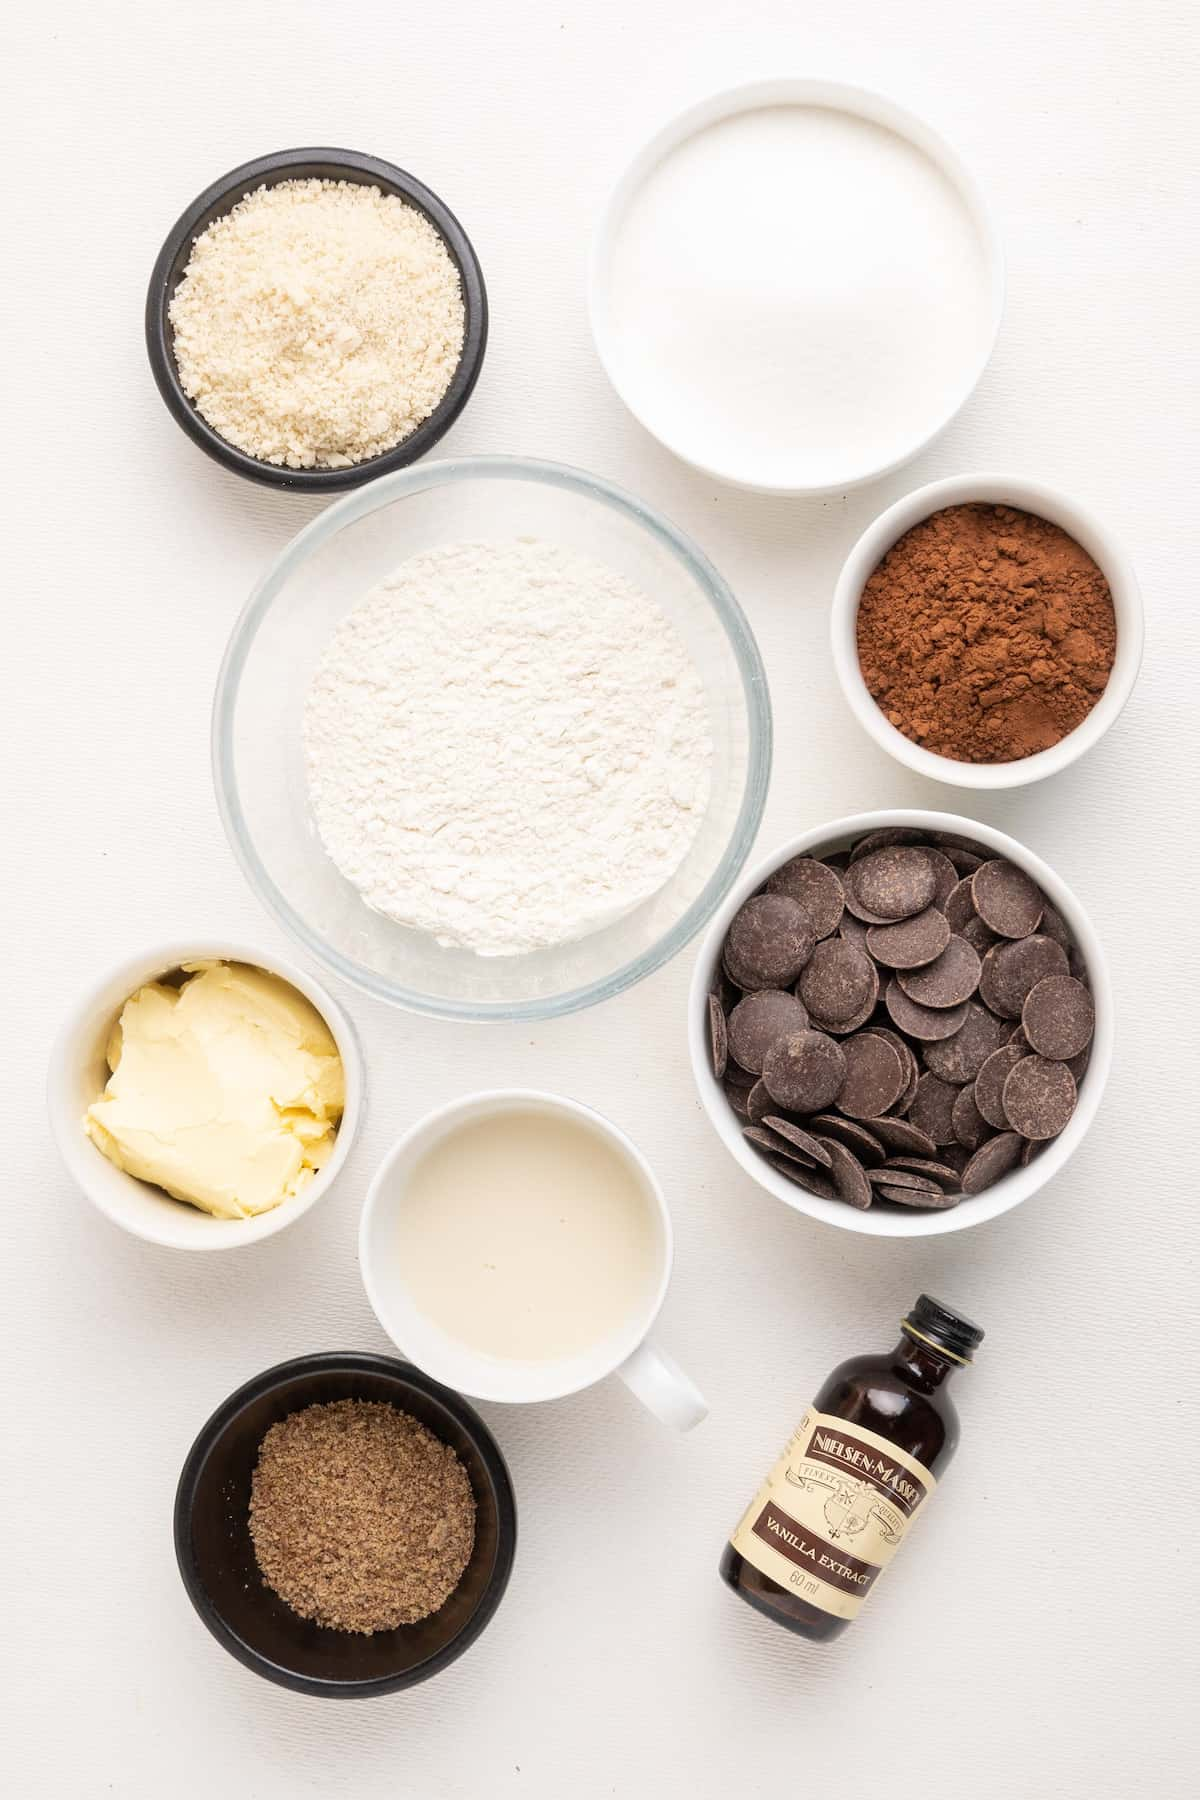 The ingredients for a vegan chocolate brownie on a white background.